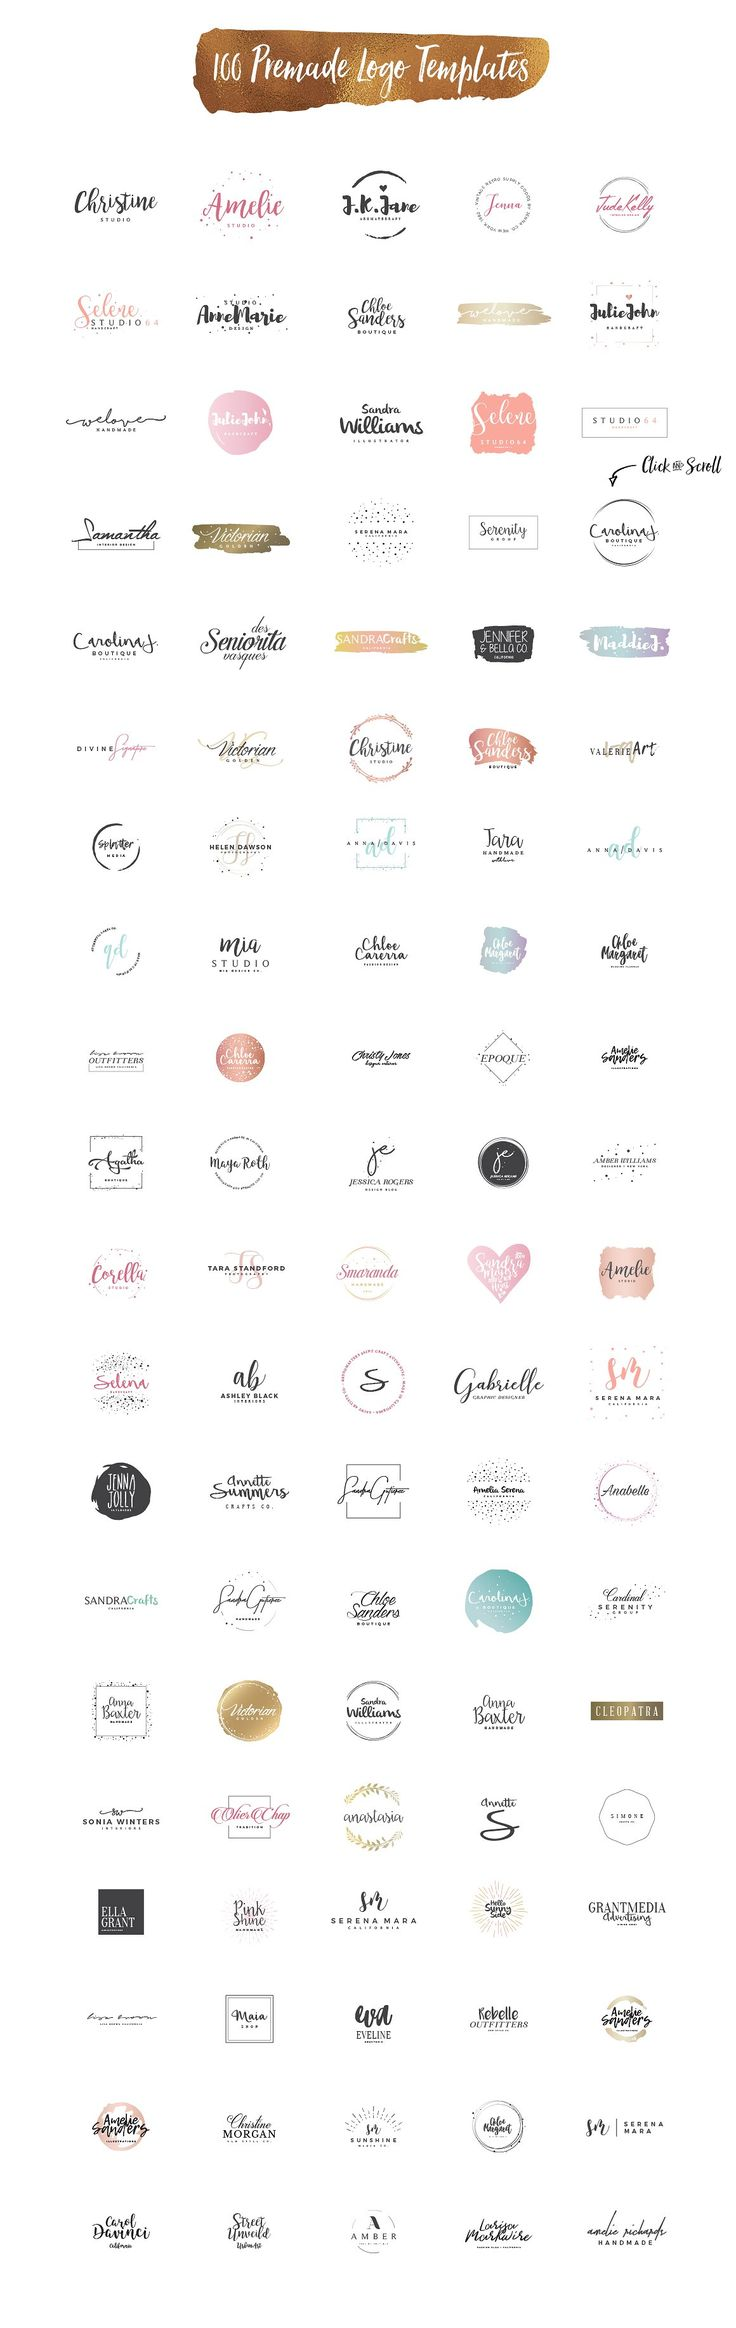 Hers Logo Branding Kit by Zeppelin_Graphics on @creativemarket